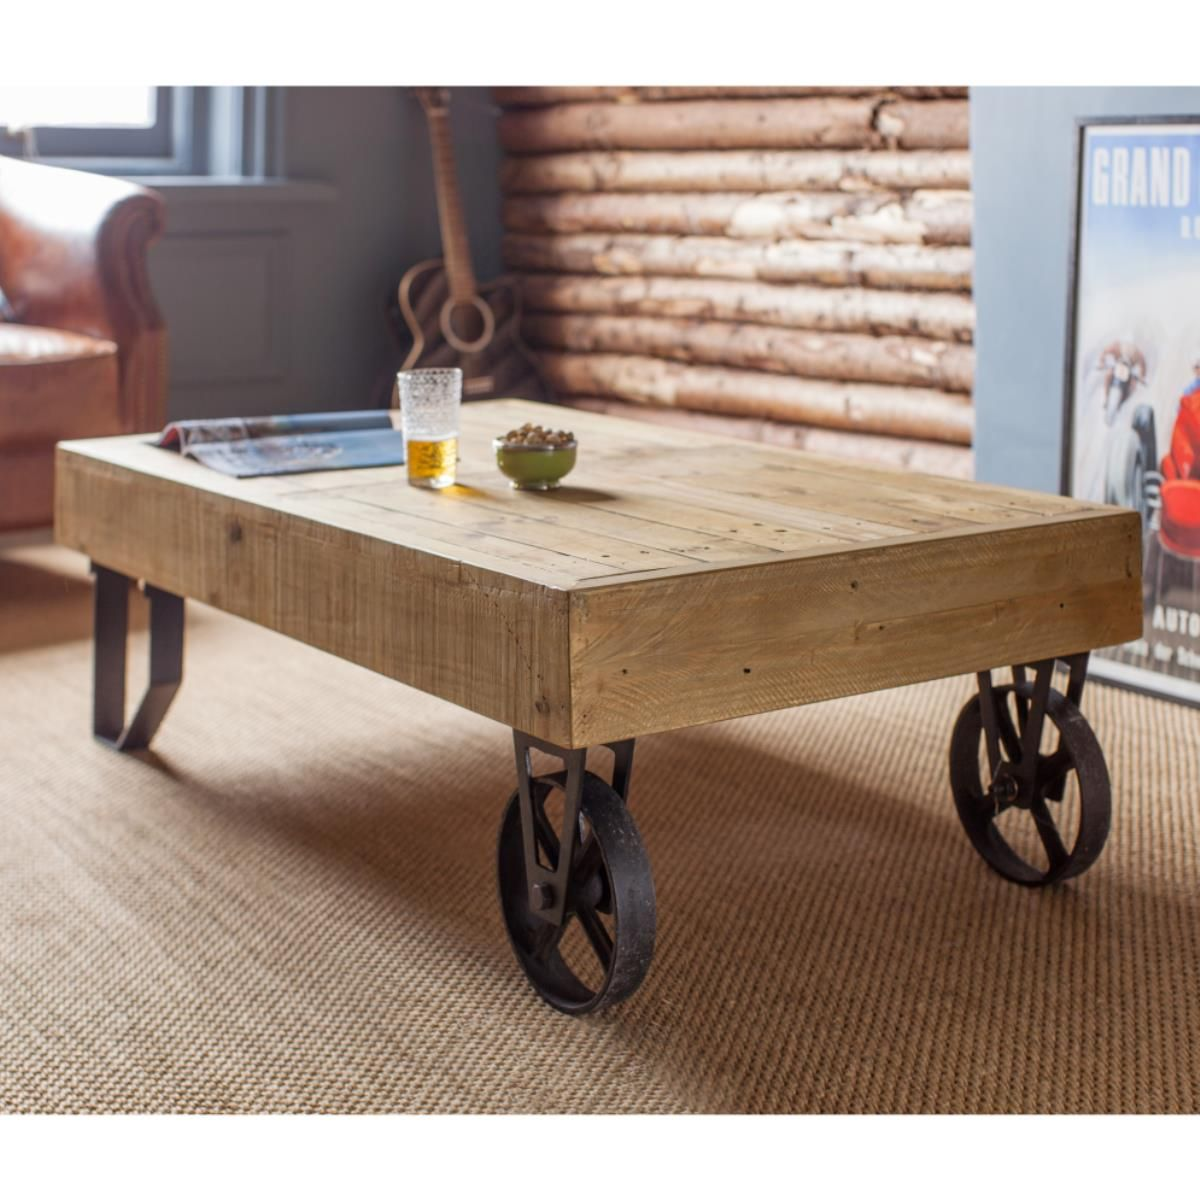 Quirky Tables Stonemill Cart Coffee Table Quirky Design With Railway